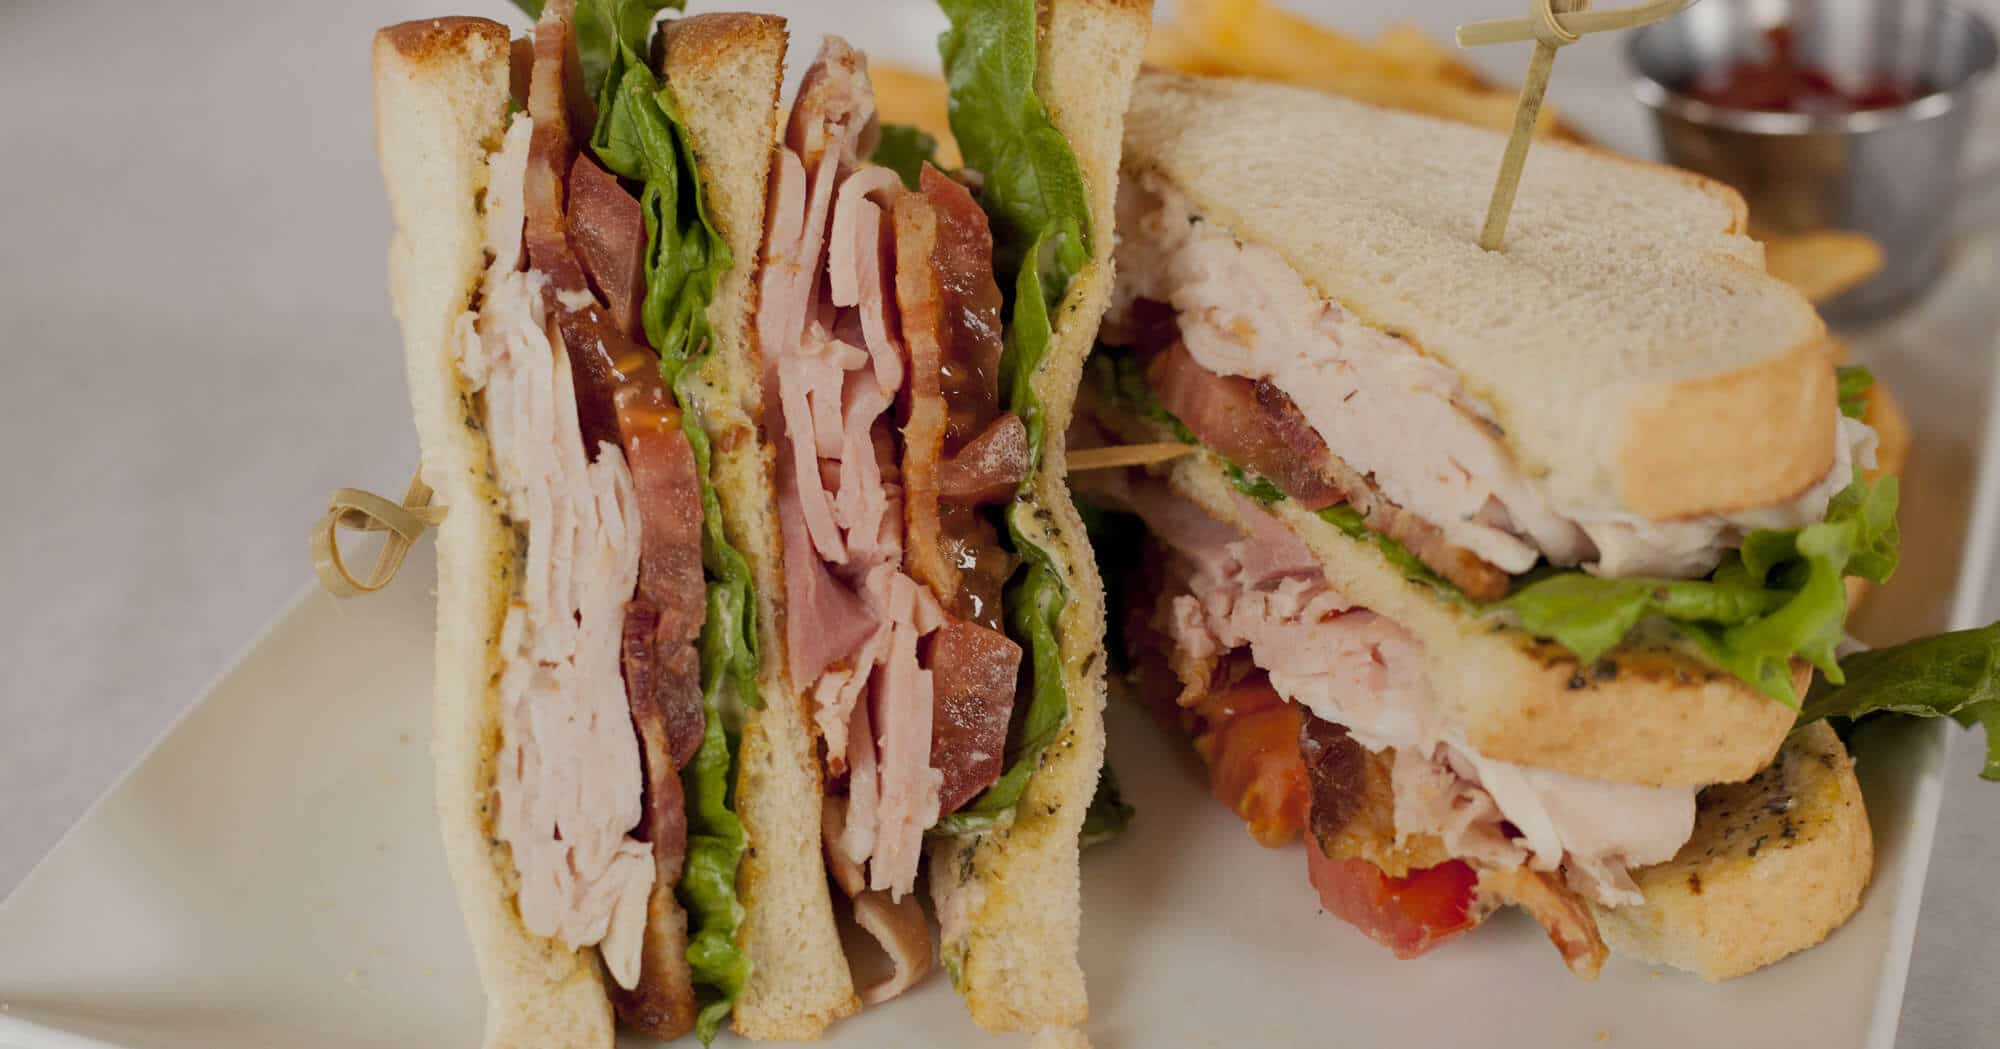 Join us at Harvey's Union Station for Lunch